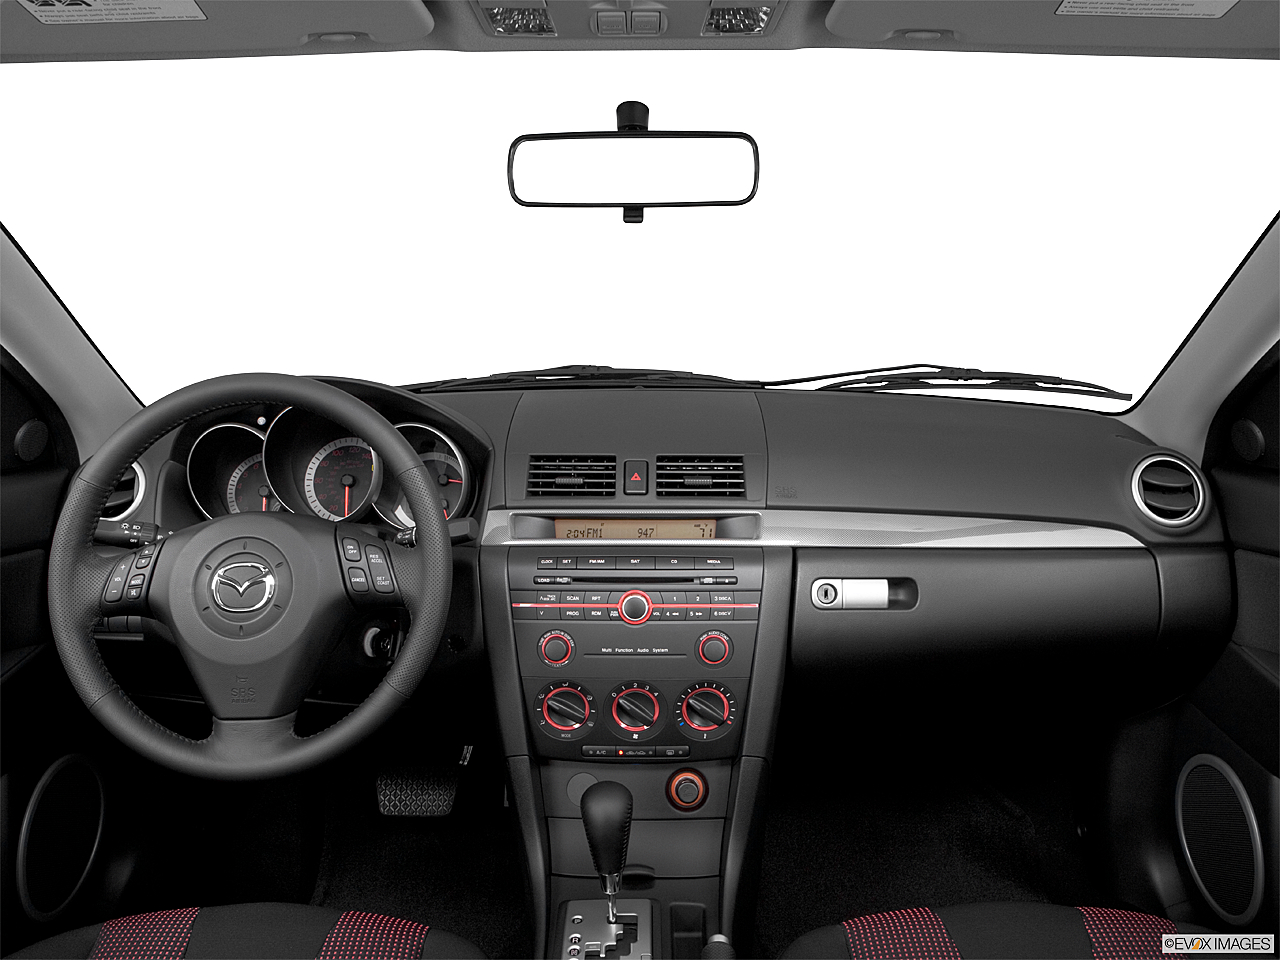 2006 Mazda MAZDA3 s Touring, centered wide dash shot